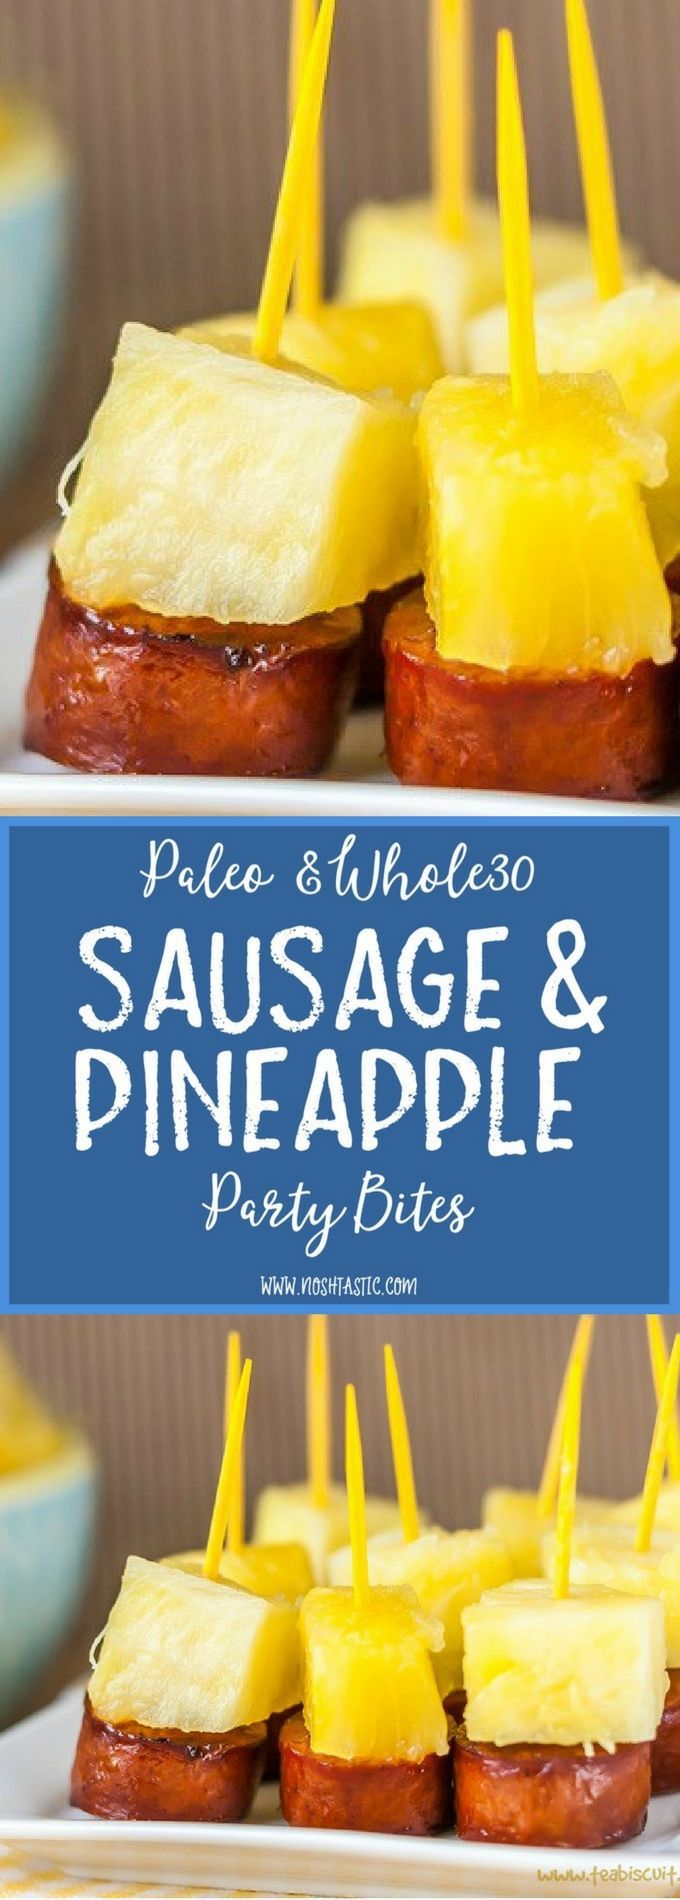 Hosting a baby shower and need some food ideas look no further since - Looking For Super Easy Paleo Or Whole30 Party Foods Then Look No Further This Sausage And Pineapple Appetizer Is Super Easy To Make And Can Be Paleo And